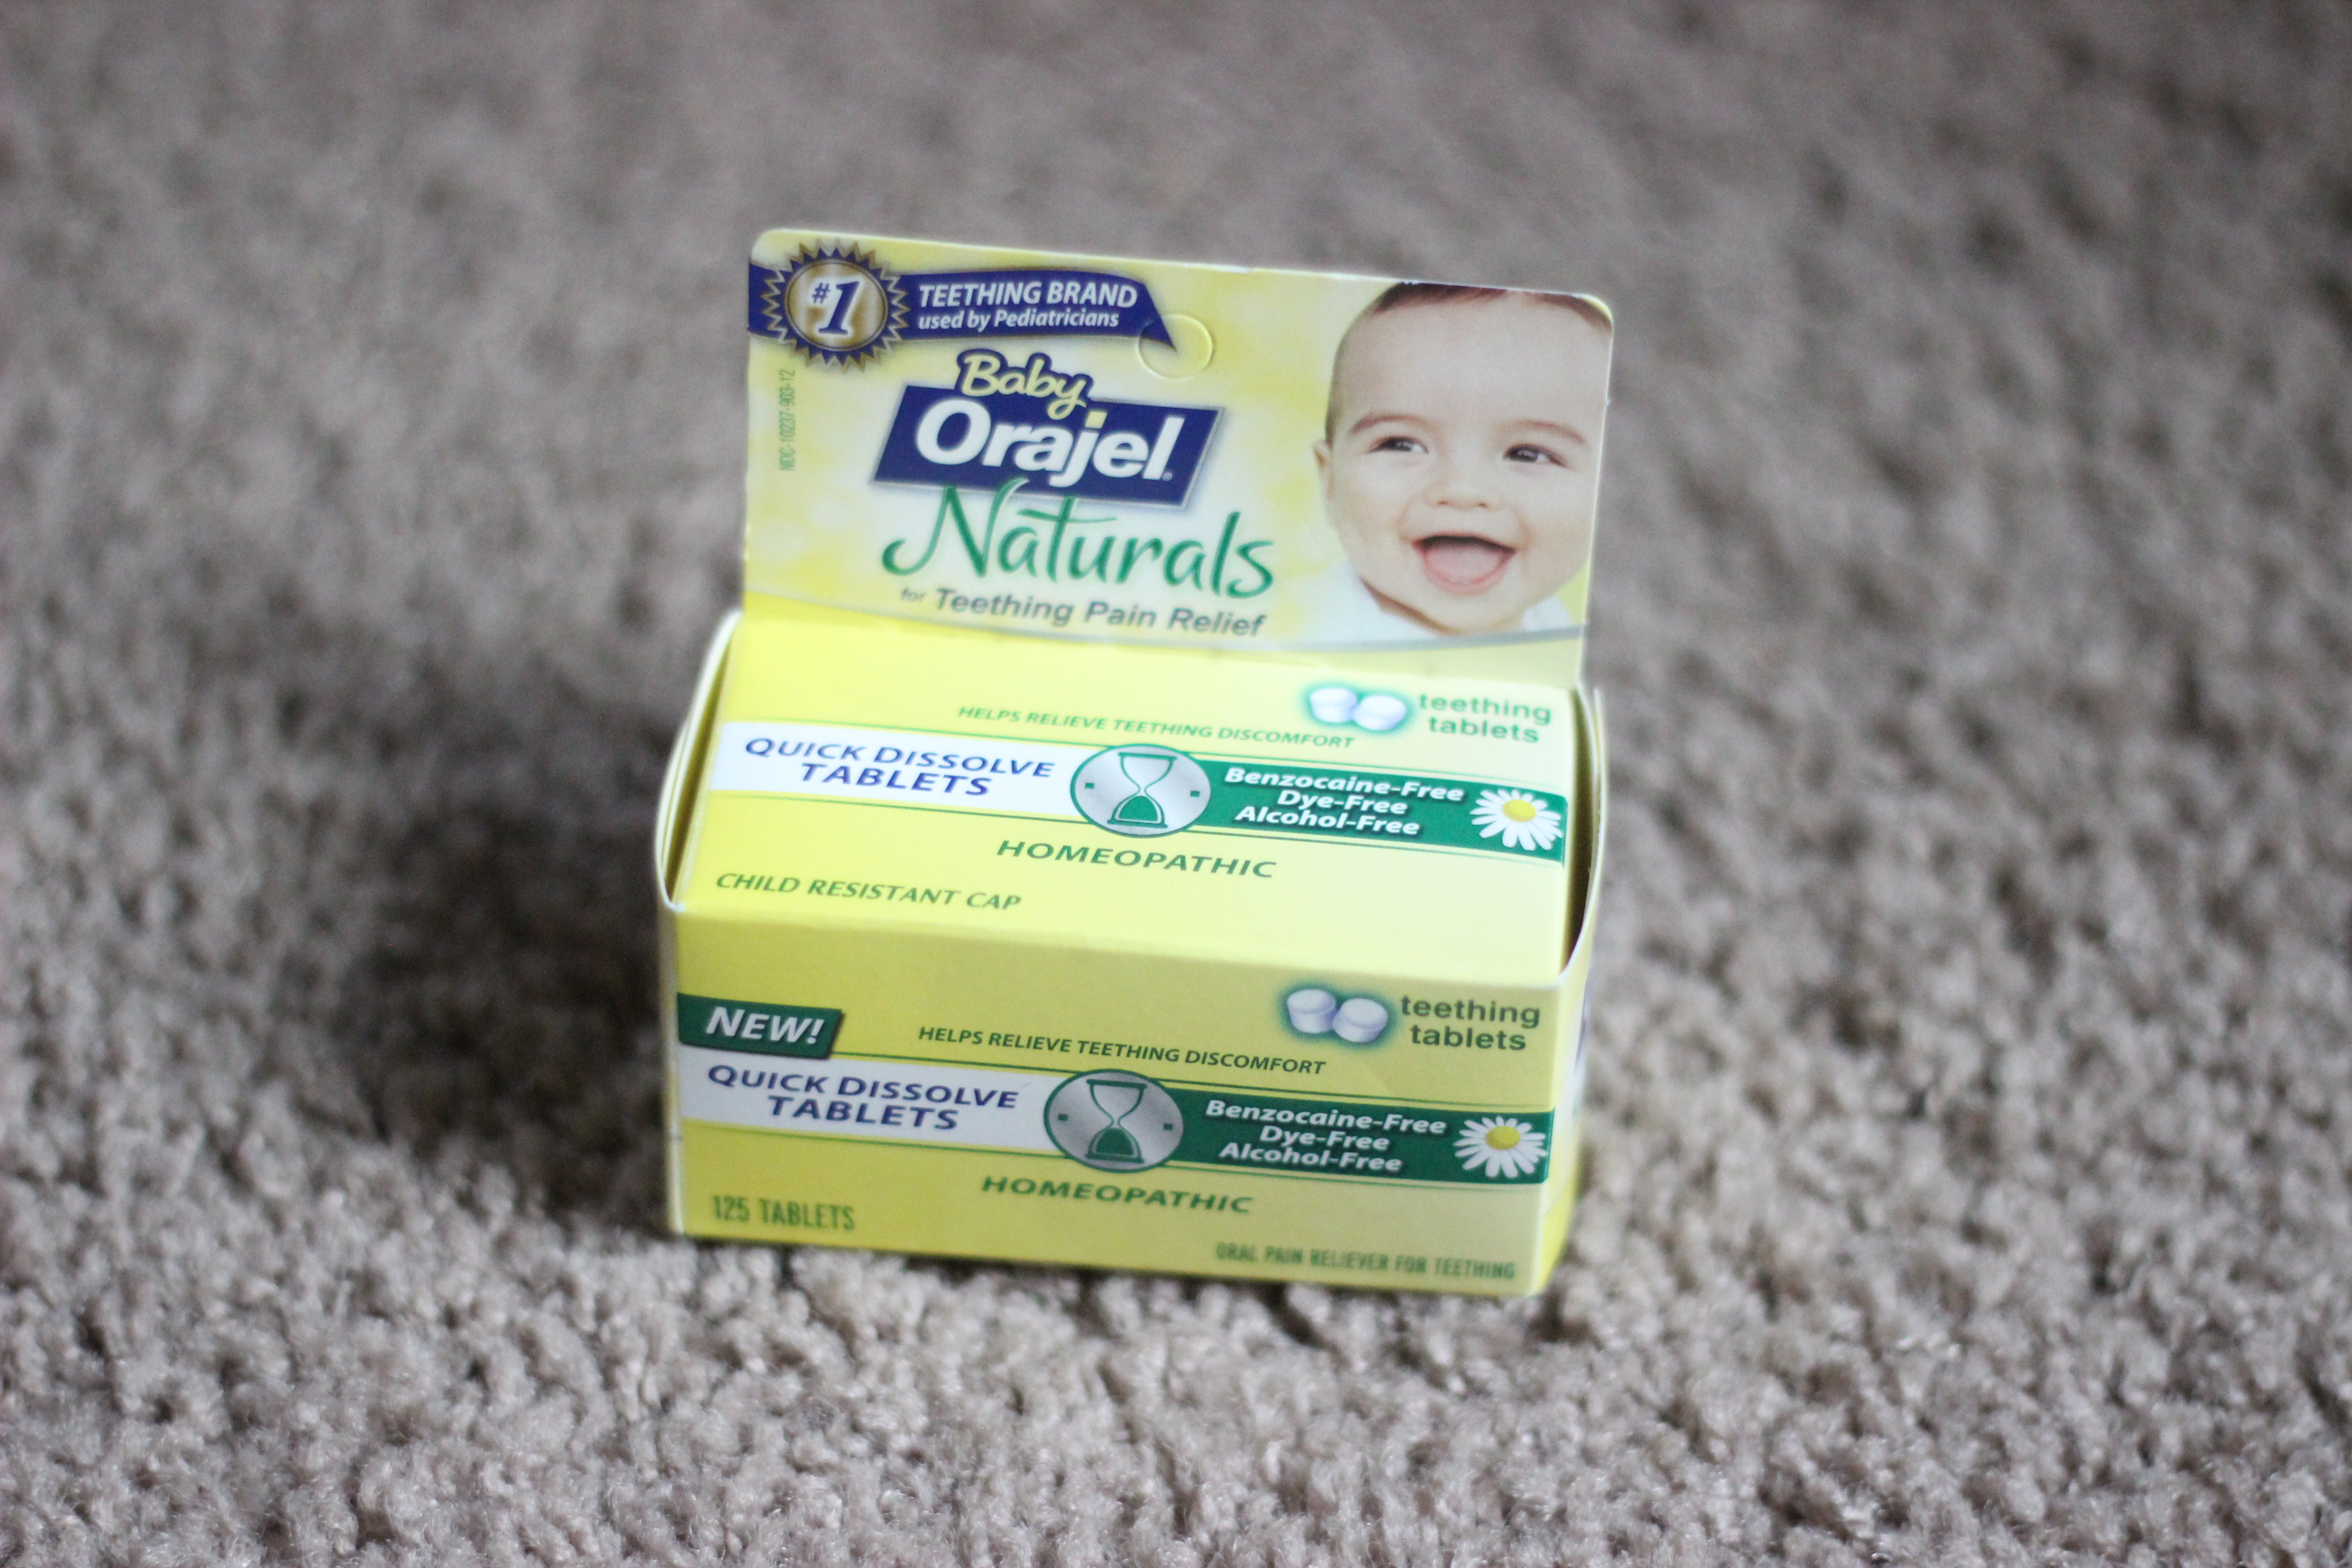 50 Target Gift Card Giveaway From Baby Orajel Naturals